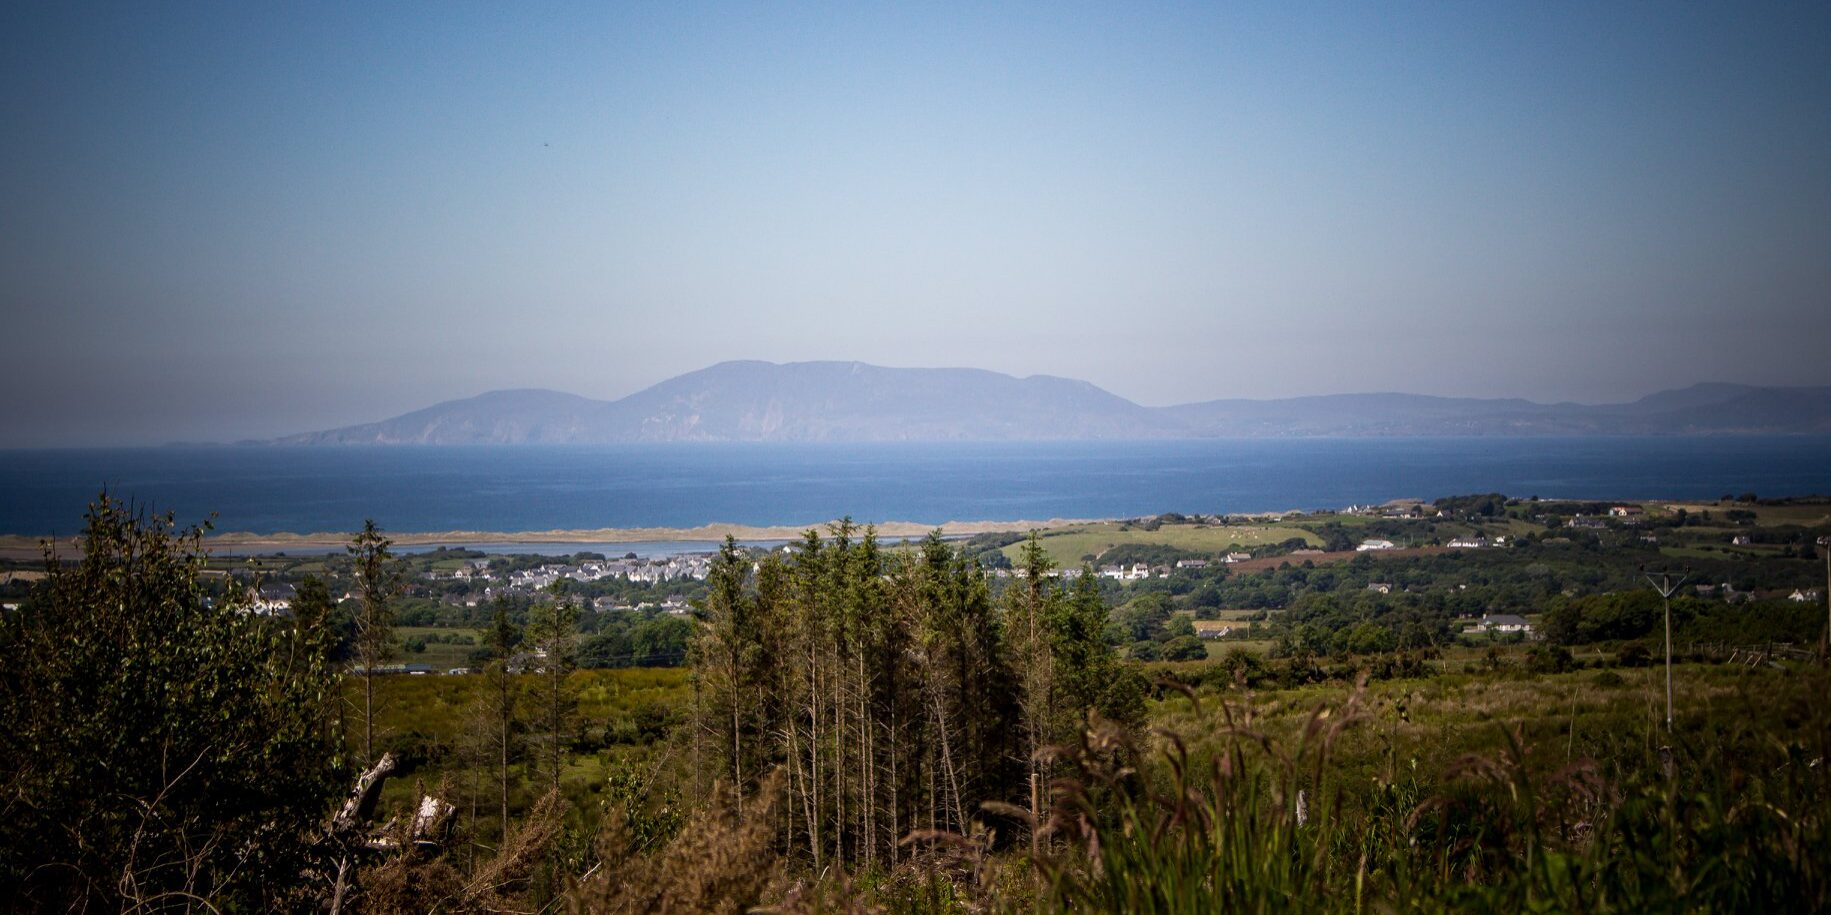 Sligo looking to Donegal hills